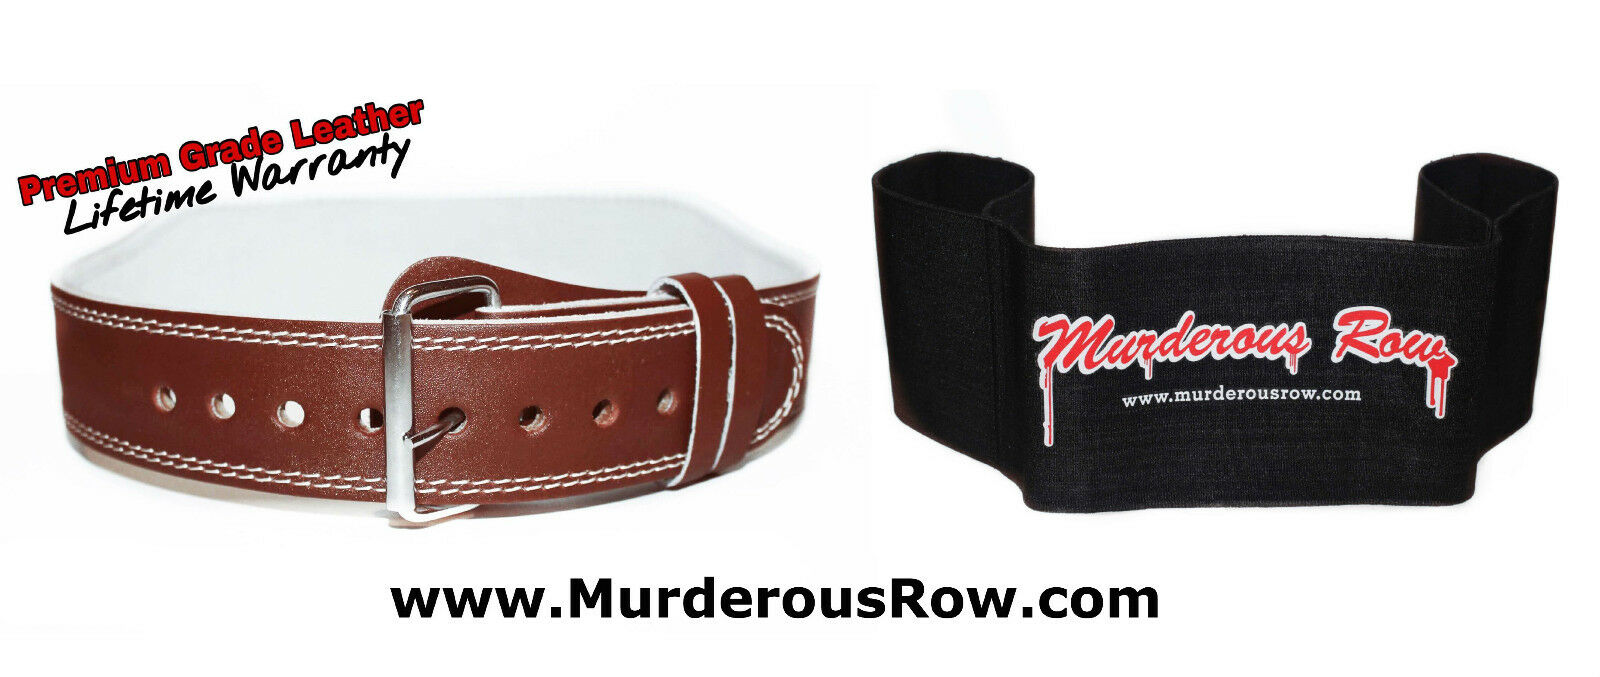 Murderous Row Bench Press Belt (LARGE)+ Murderous  Row Sling Shot (L) -ULTIMATE  wholesale prices